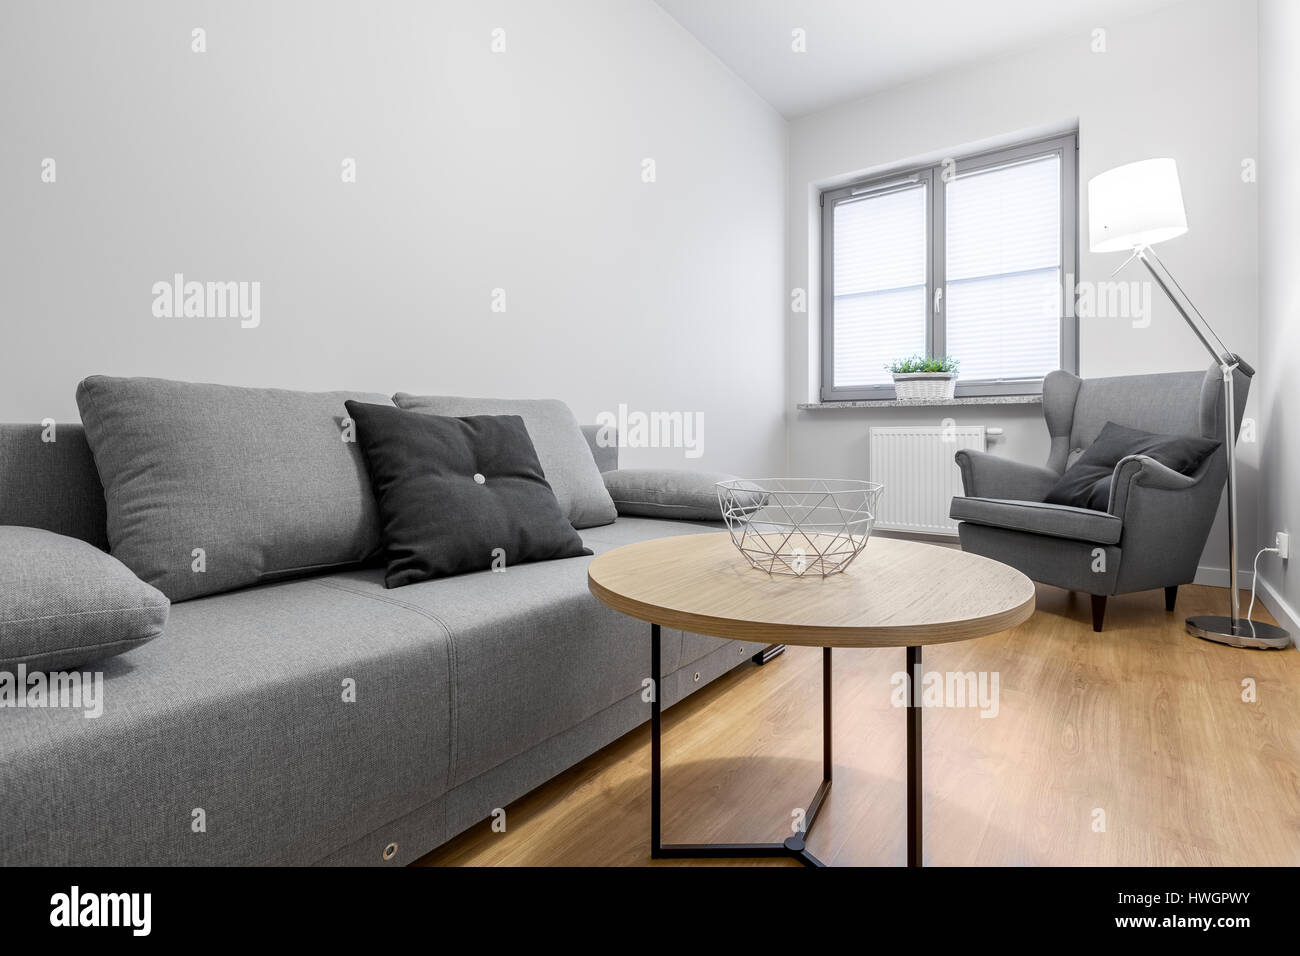 Kleines Wohnzimmer Contemporary Lounge Gray Sofa Wall Stockfotos